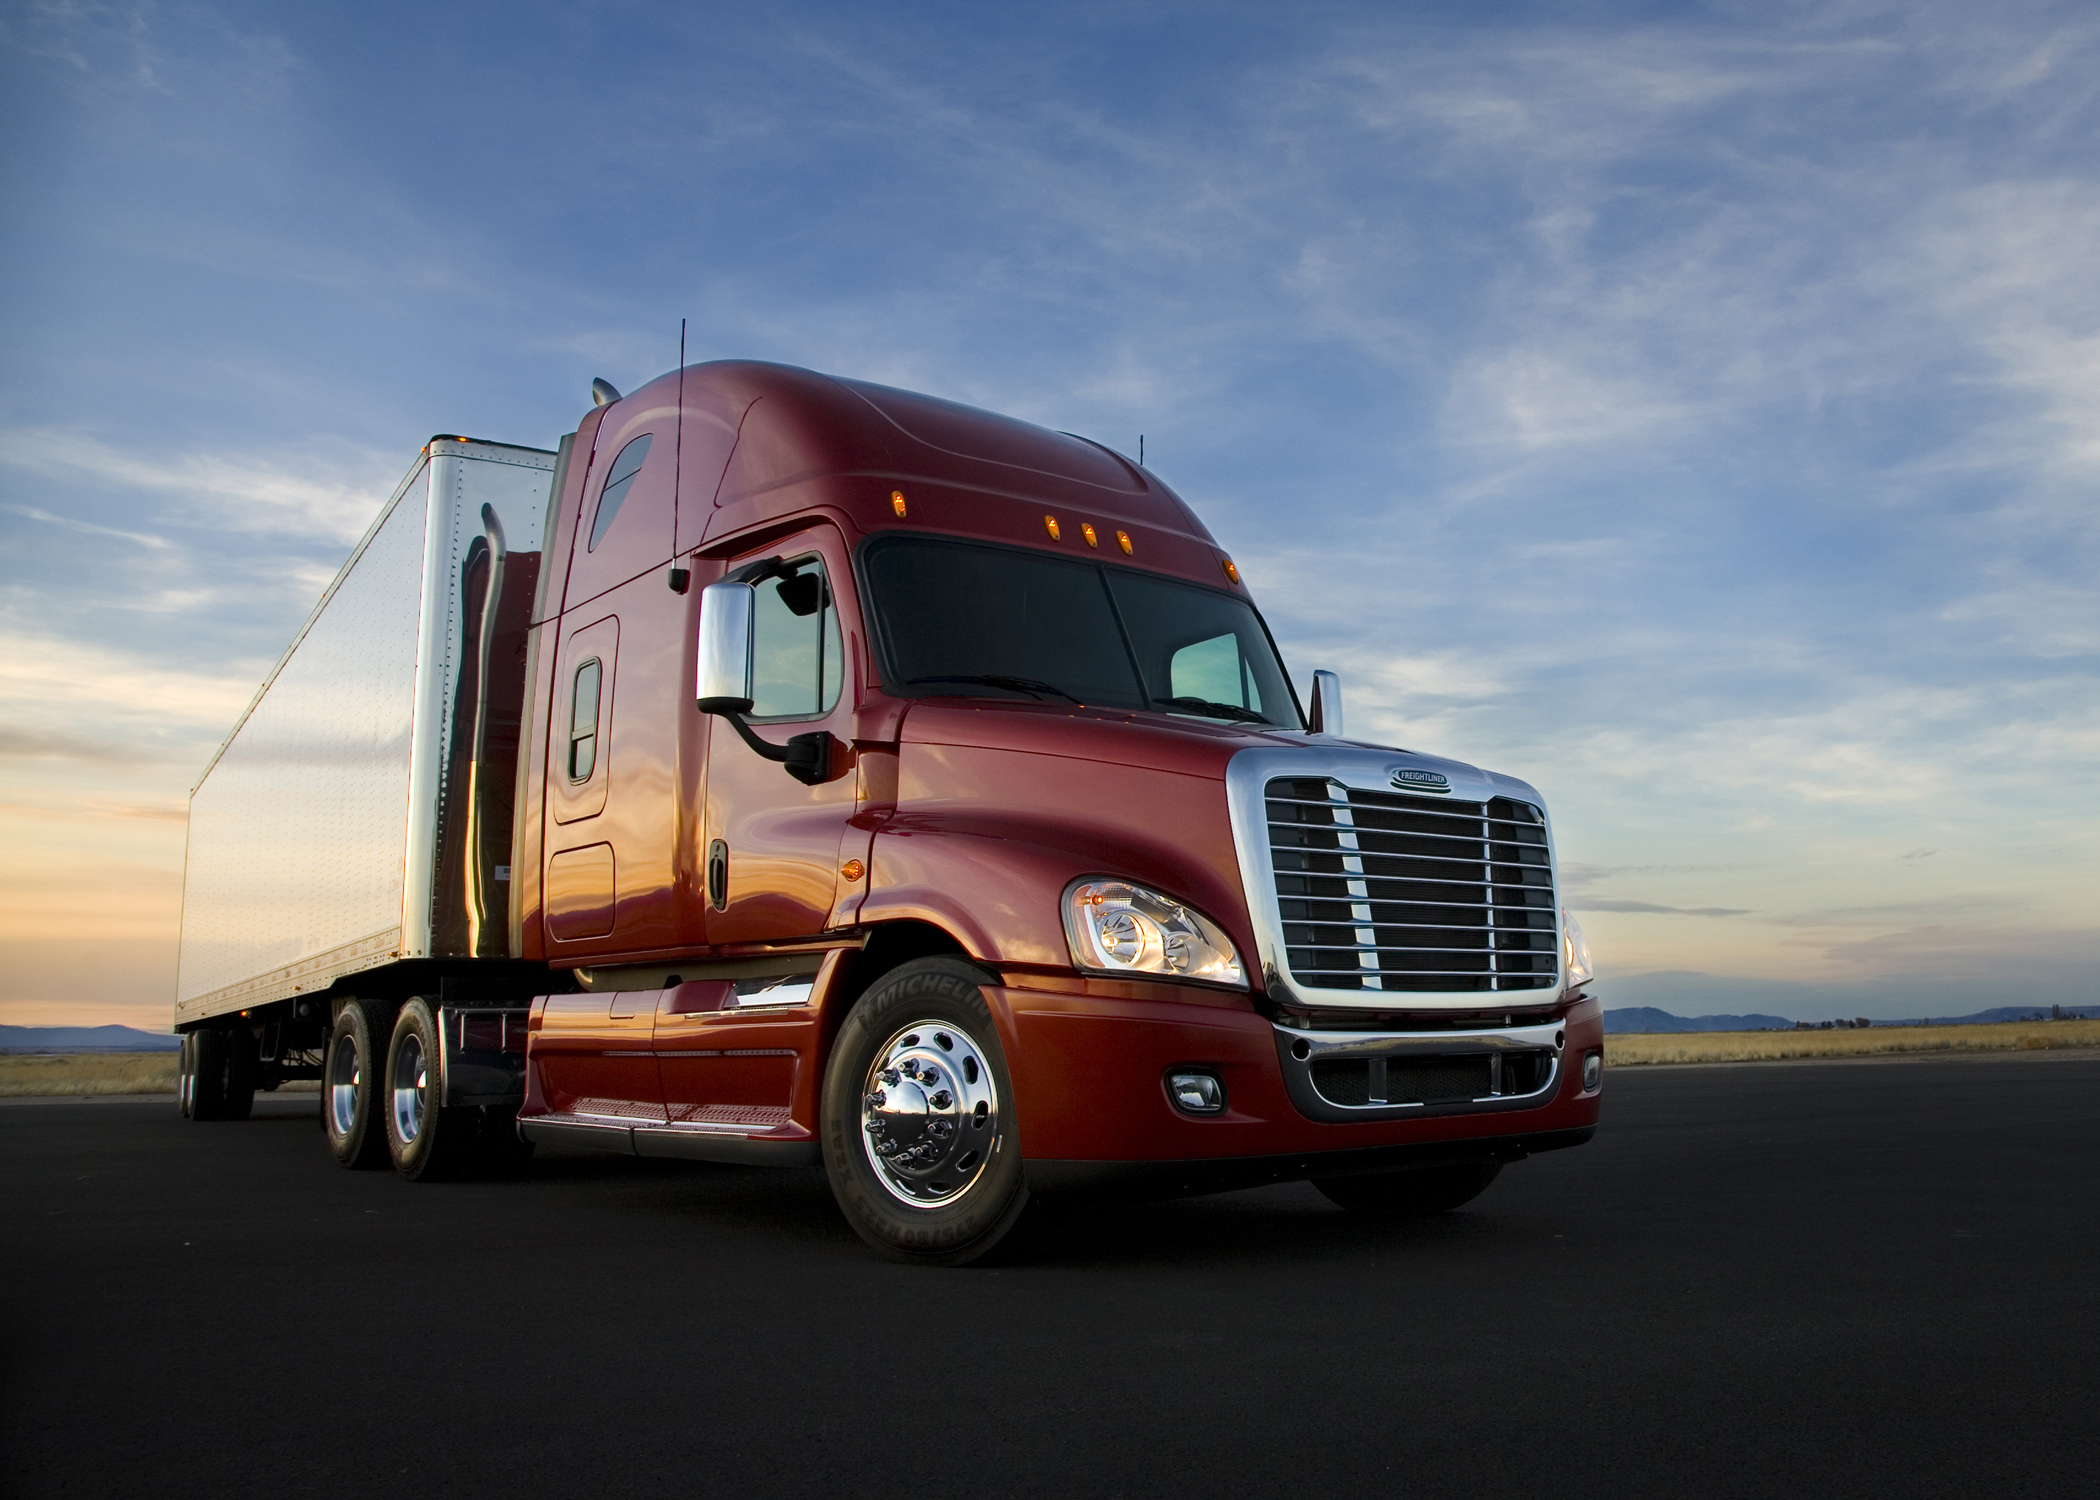 You Can't Afford to Wait: Variety of Factors Push New Truck Deliveries Out